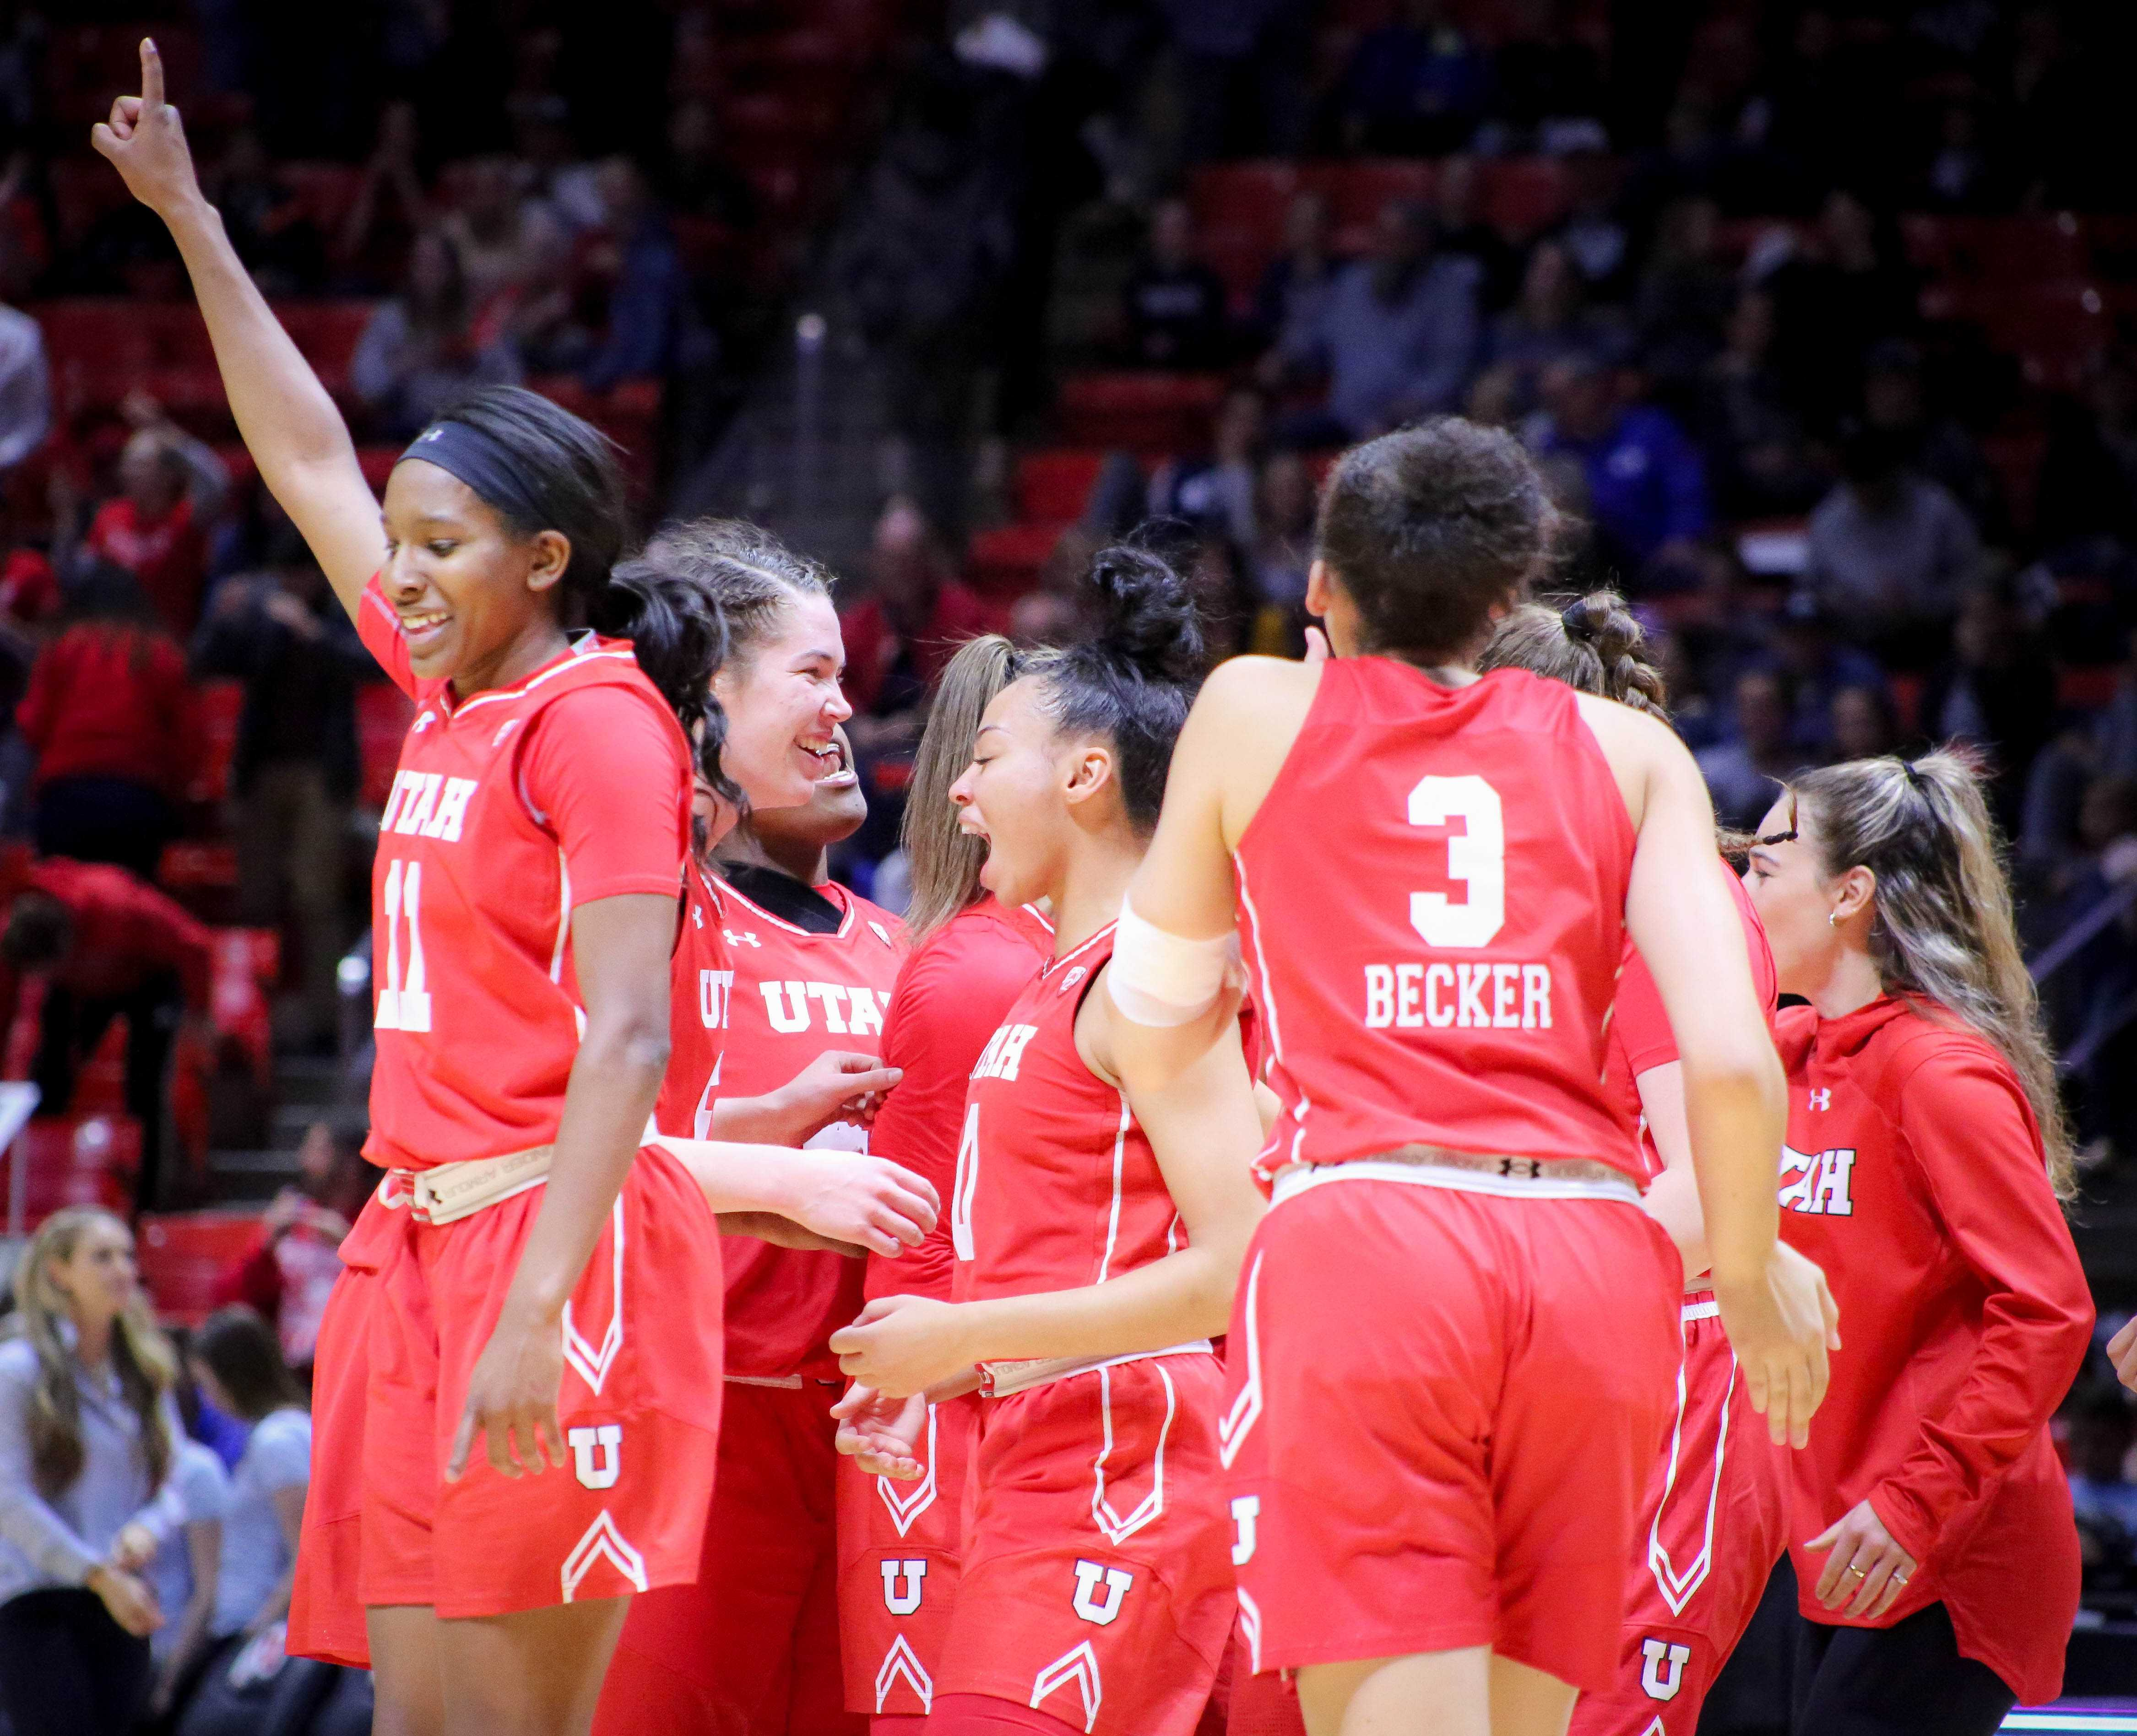 The University of Utah Lady Utes cheering because they defeated their rival Brigham Young University at the Huntsman Center in Salt Lake City, UT on Saturaday, Dec. 8, 2018 (Photo by Cassandra Palor | Daily Utah Chronicle)